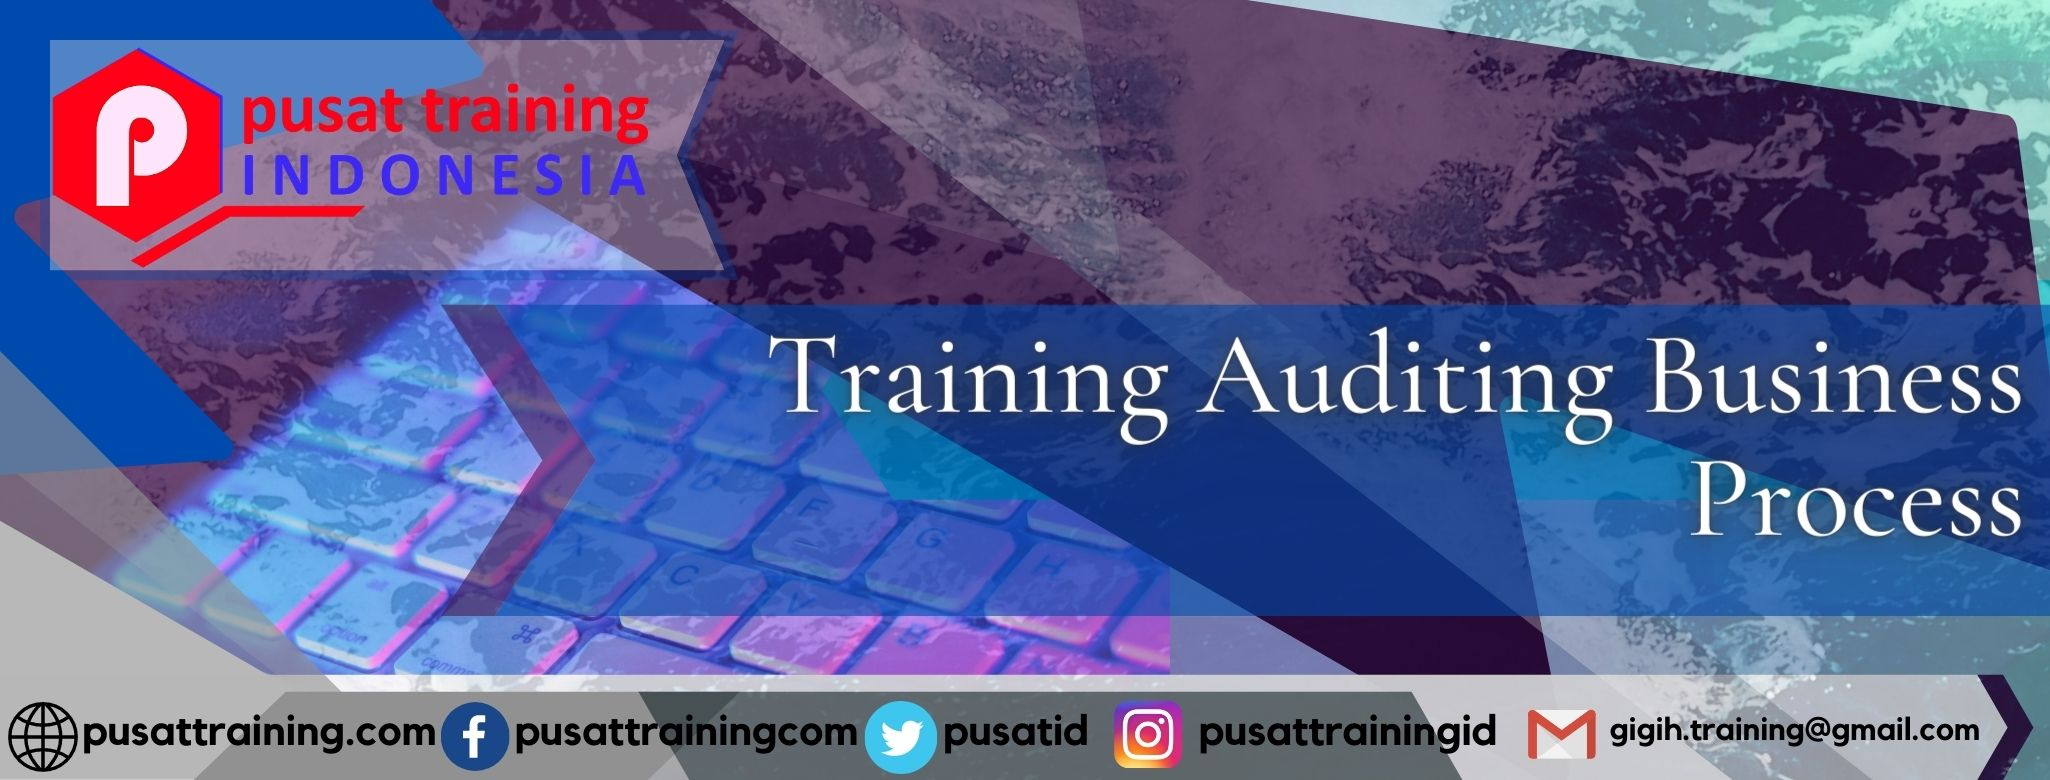 Training-Auditing-Business-Process